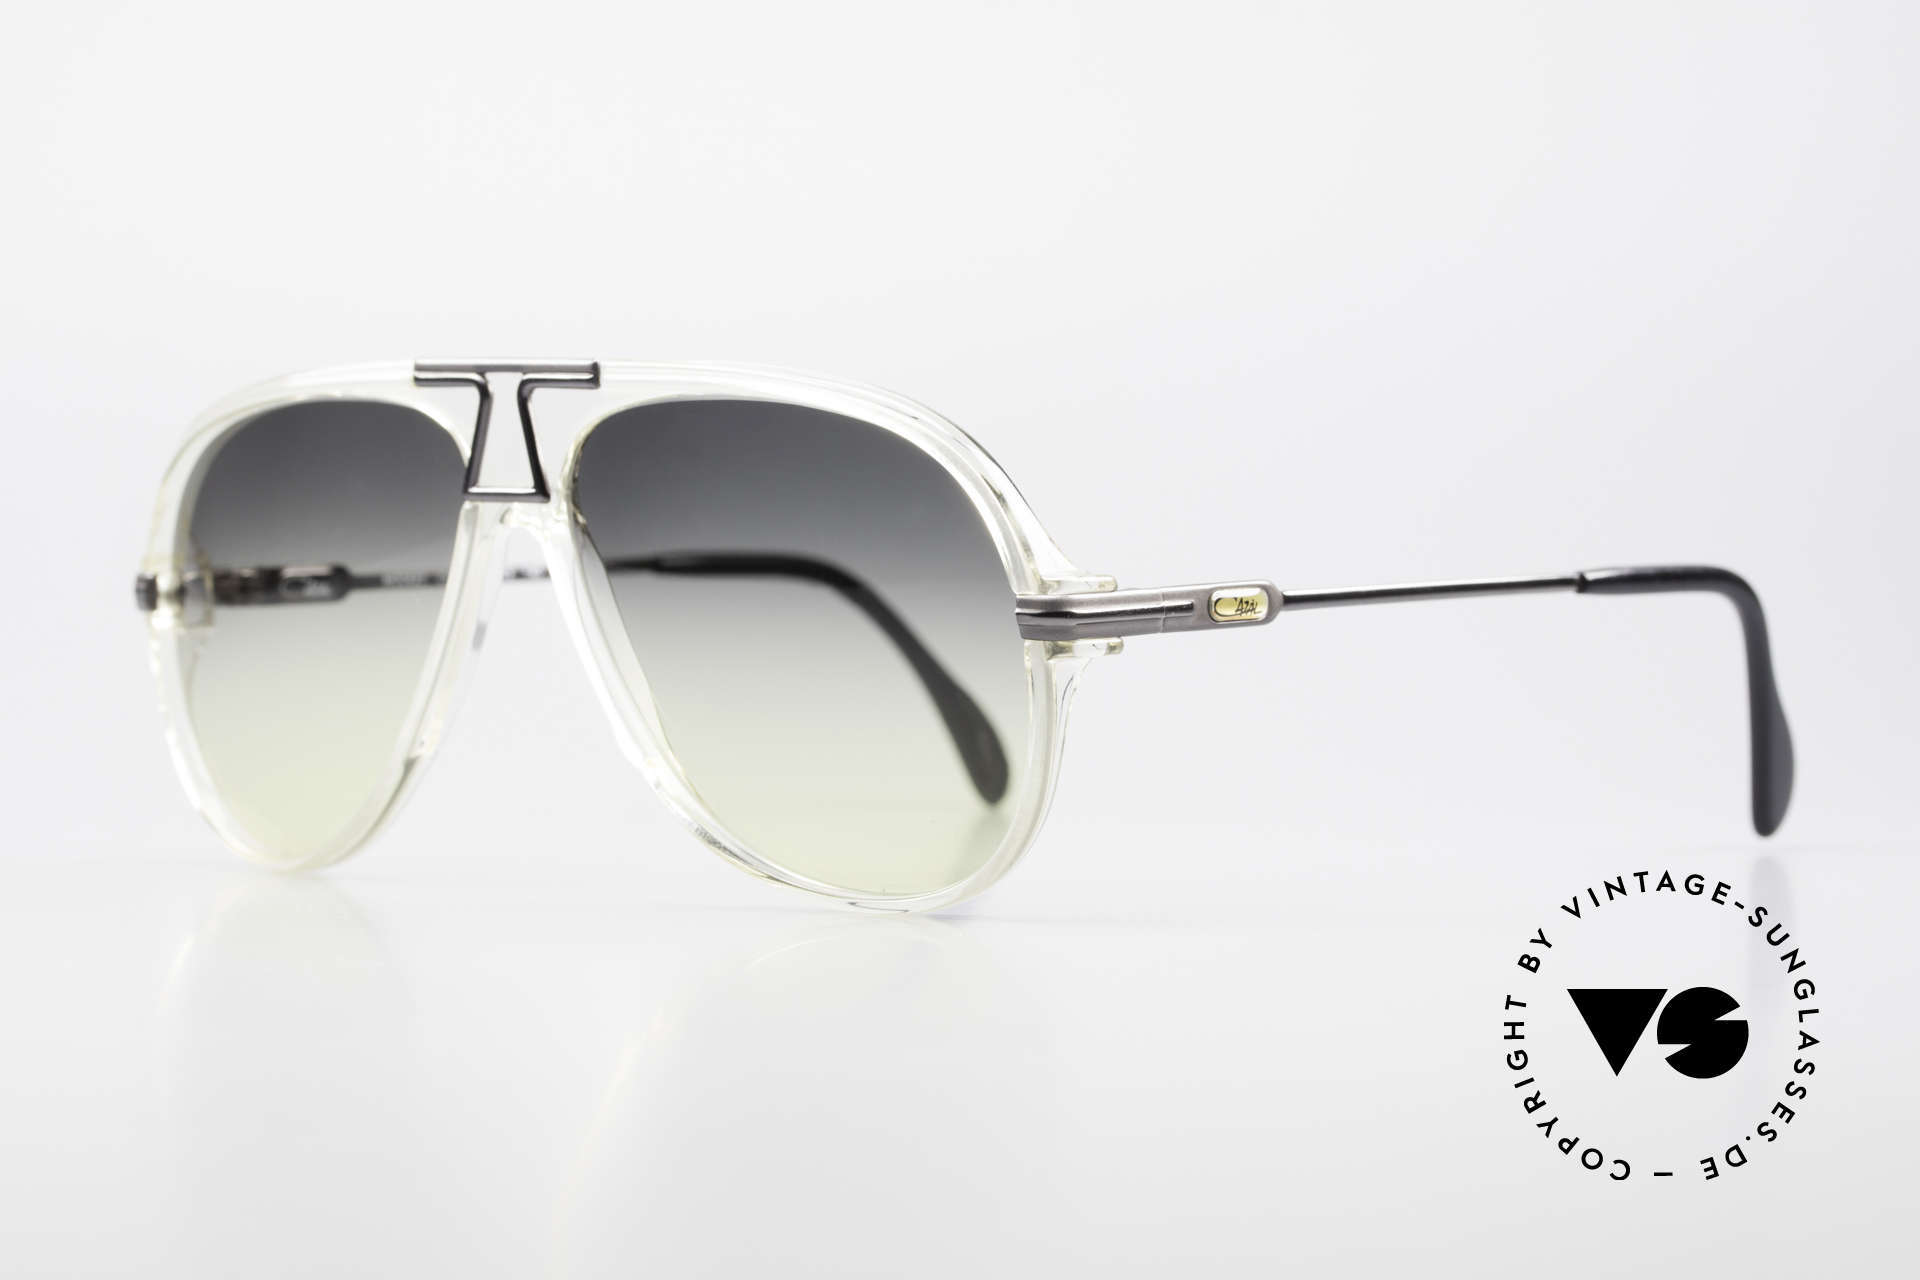 Cazal 622 Old 80's West Germany Cazal, new old stock, NOS (like all our rare vintage Cazals), Made for Men